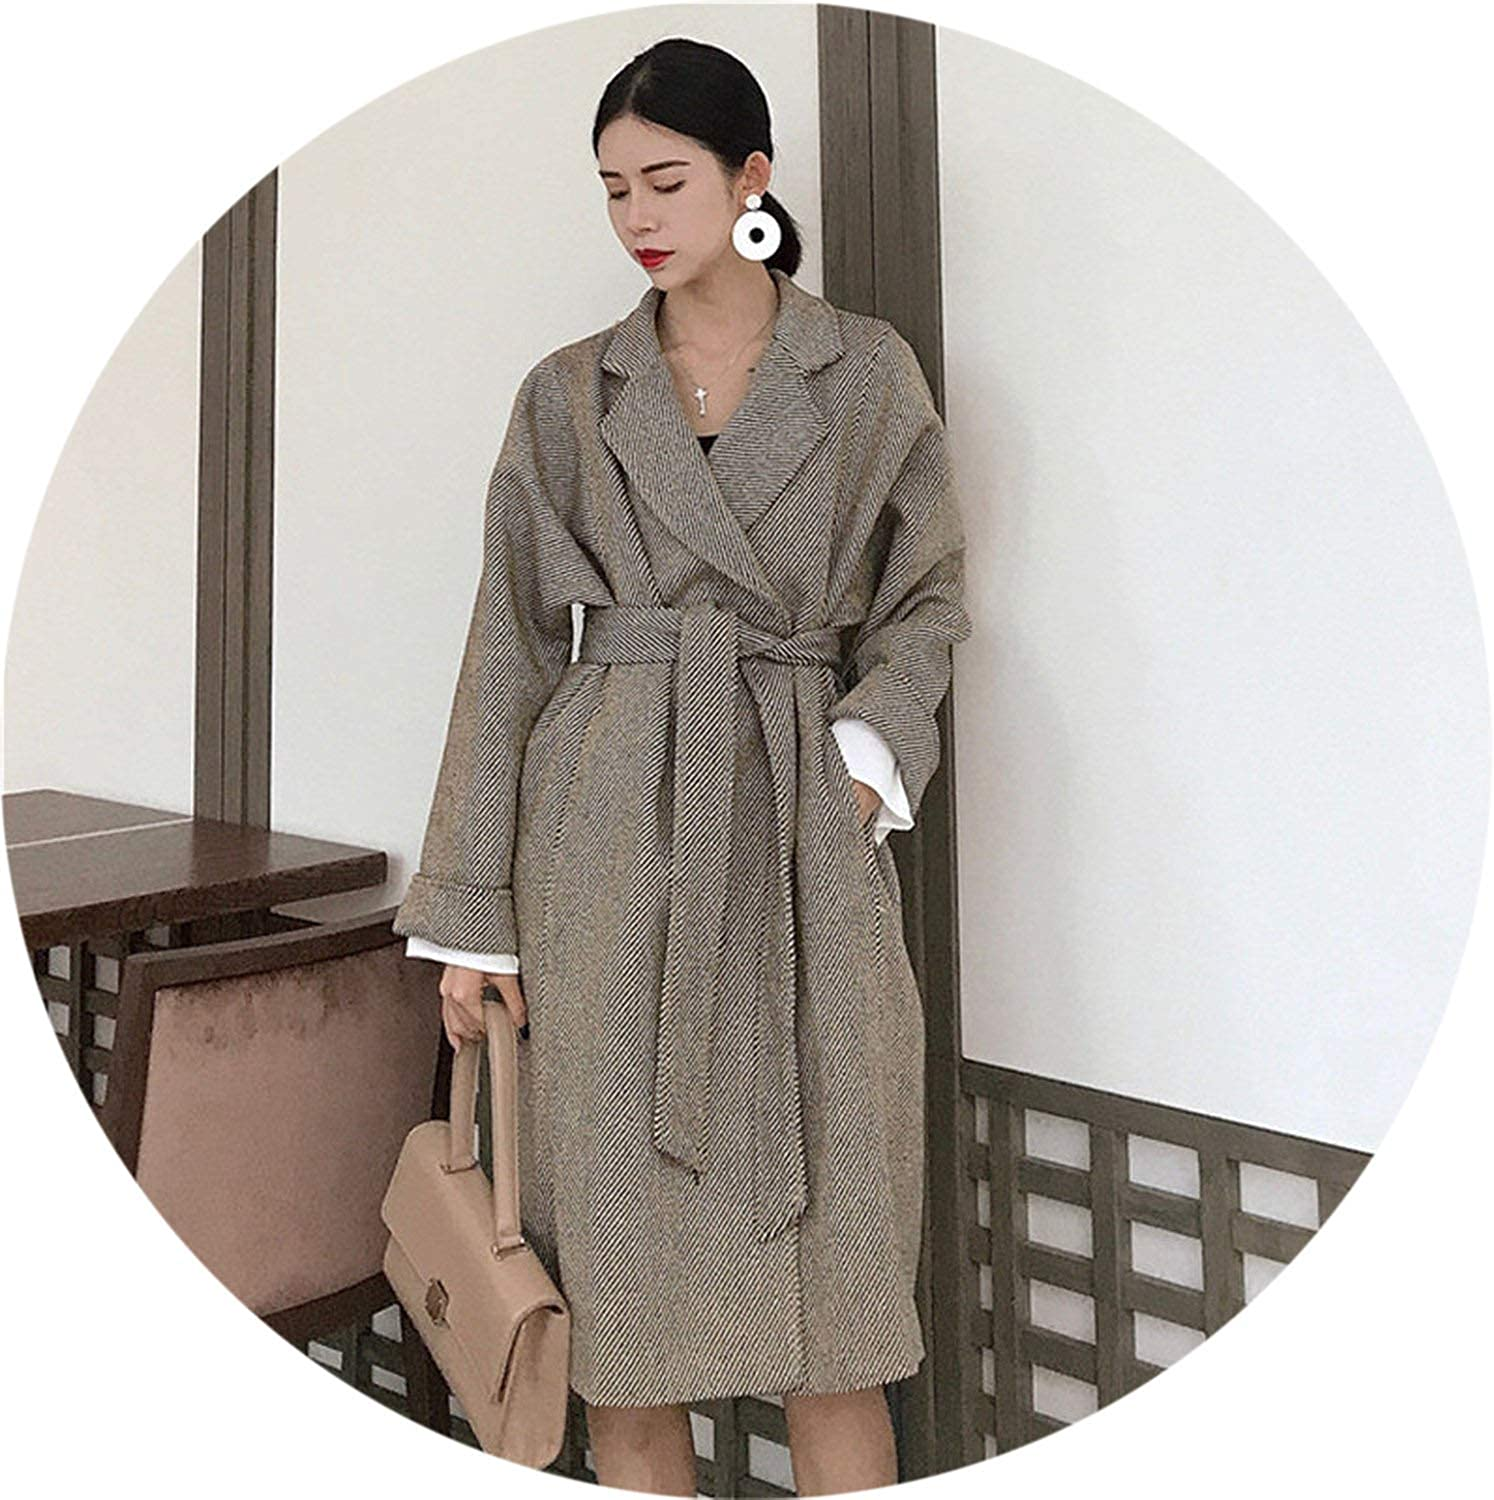 Coat Women Fashion Wool Blends Coat Elegant LongSleeved Loose Outerwear Belt Coat